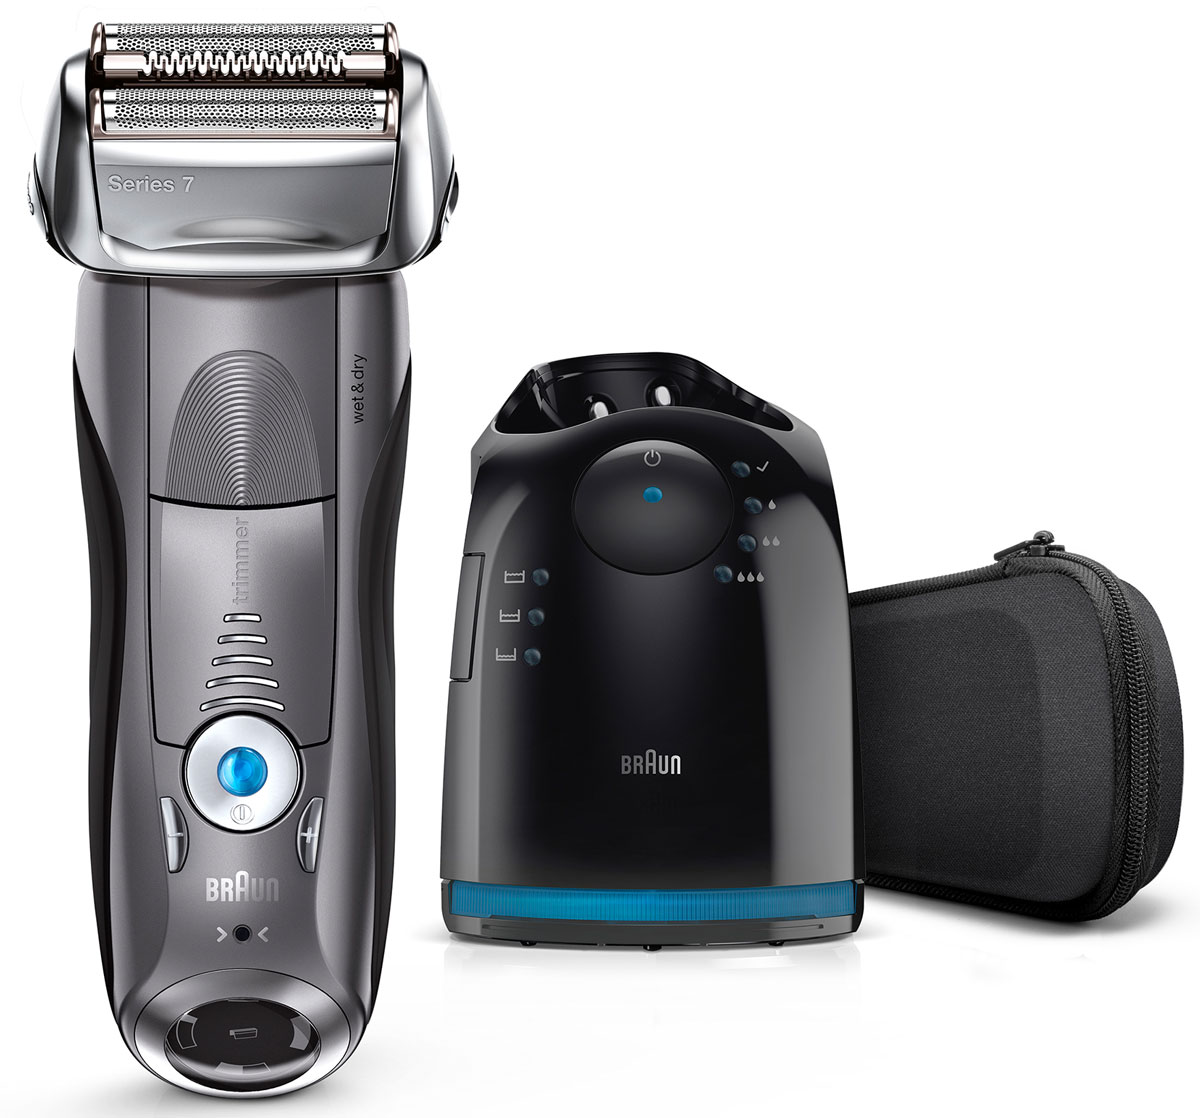 Braun Series 7 7865cc Wet&Dry, Grey электробритва электробритва series 3 3050 с системой clean&charge